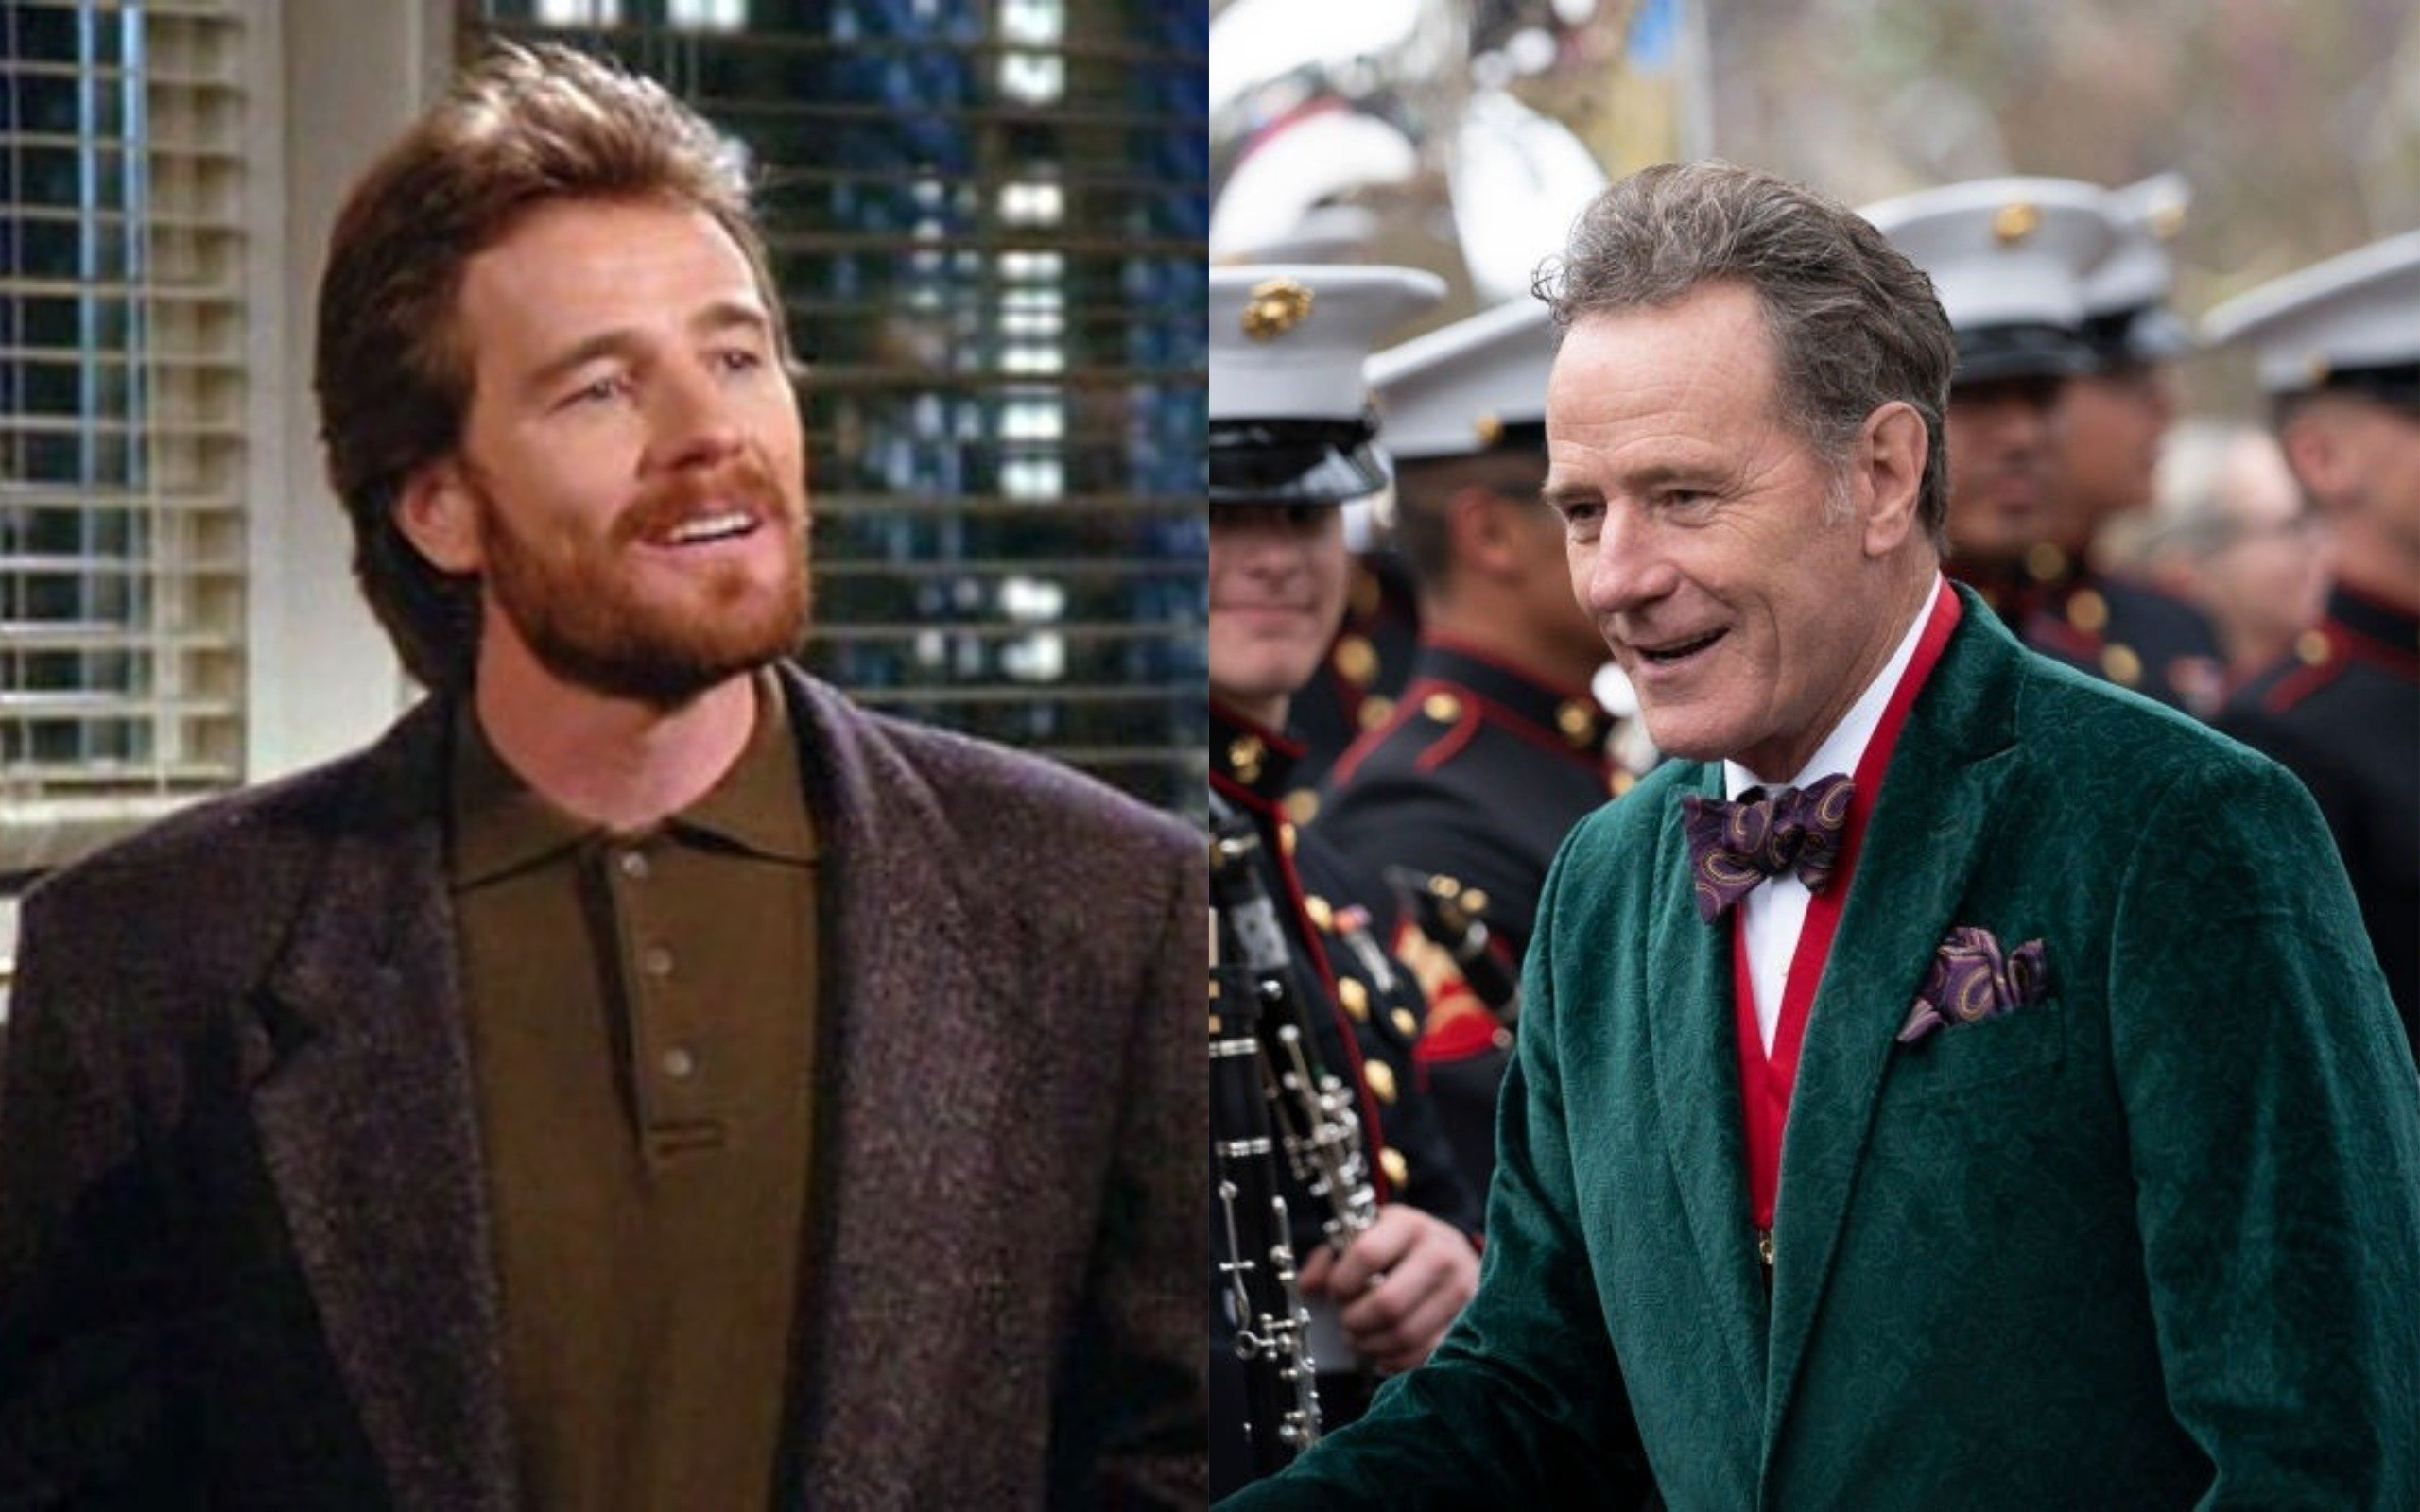 """Celebrities Who Made Their Way To the Top After """"One Life to Live"""" Show"""